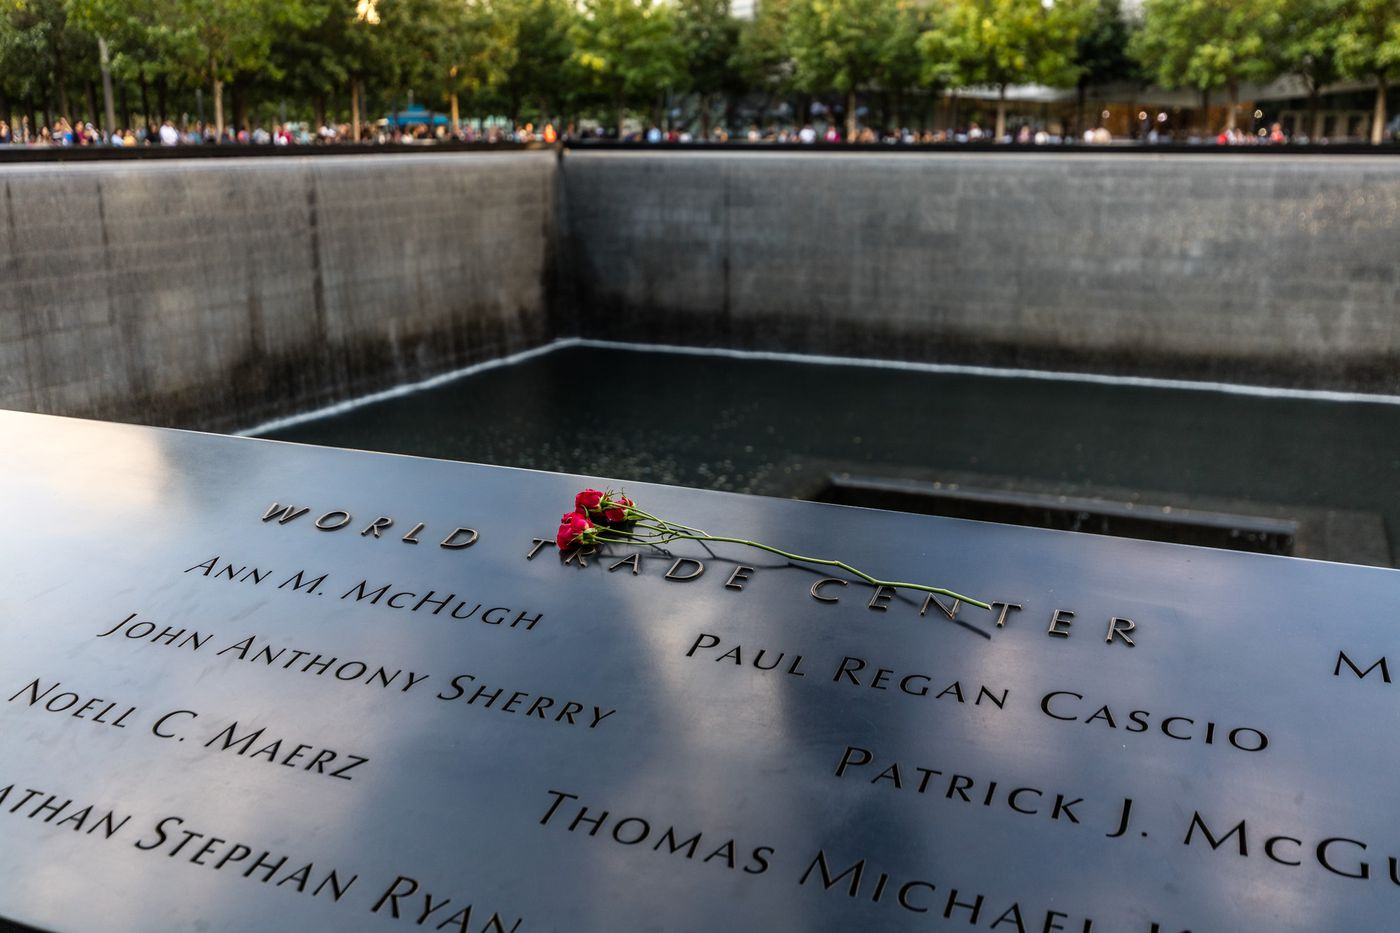 Photos: The World Trade Center in New York City, 18 years after 9/11 - Curbed NY